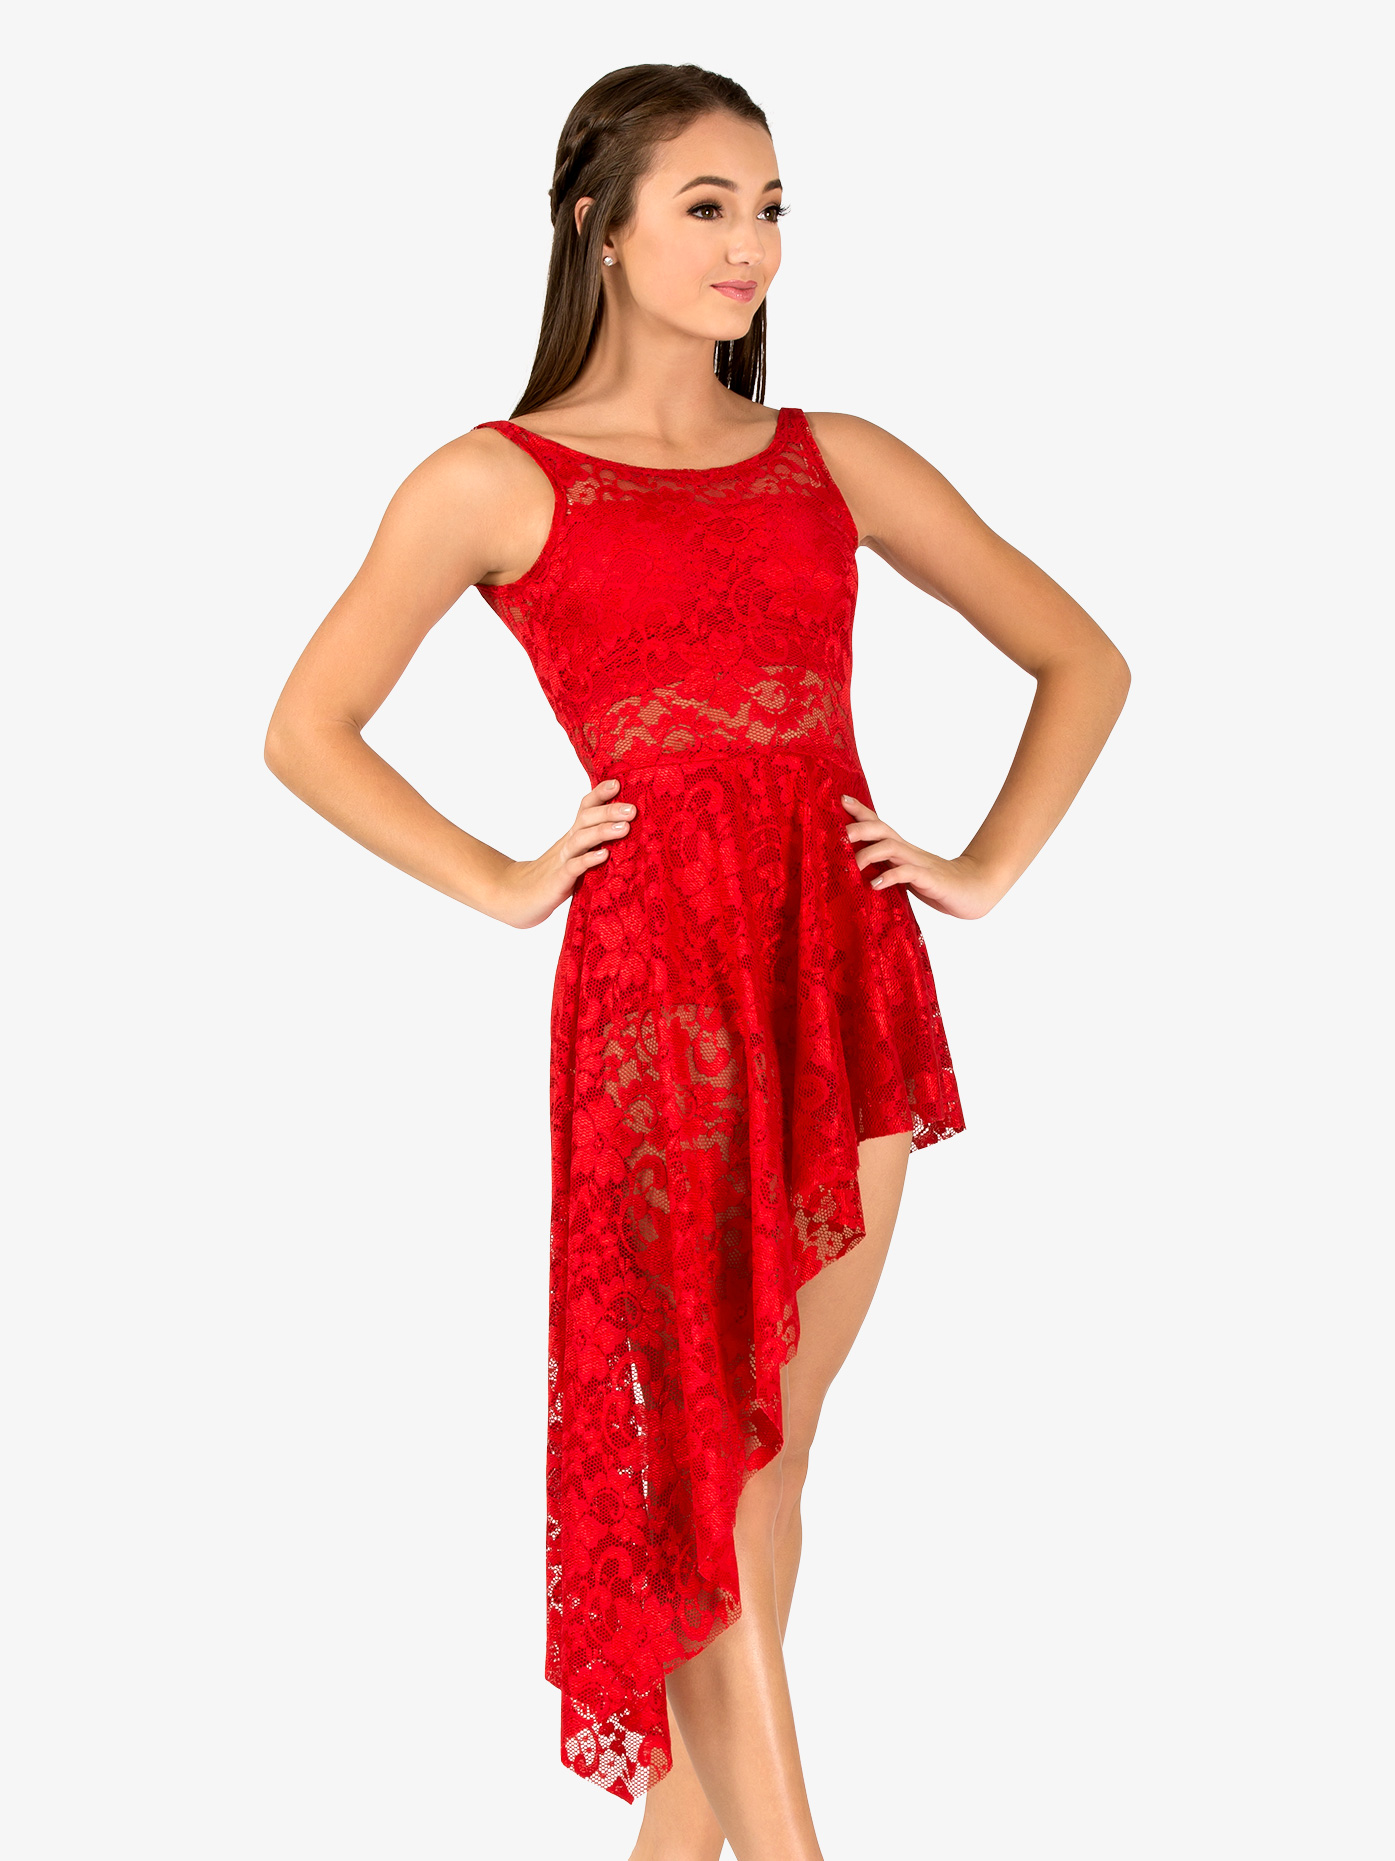 Double Platinum Adult Emballe Long Lace Overdress N7261